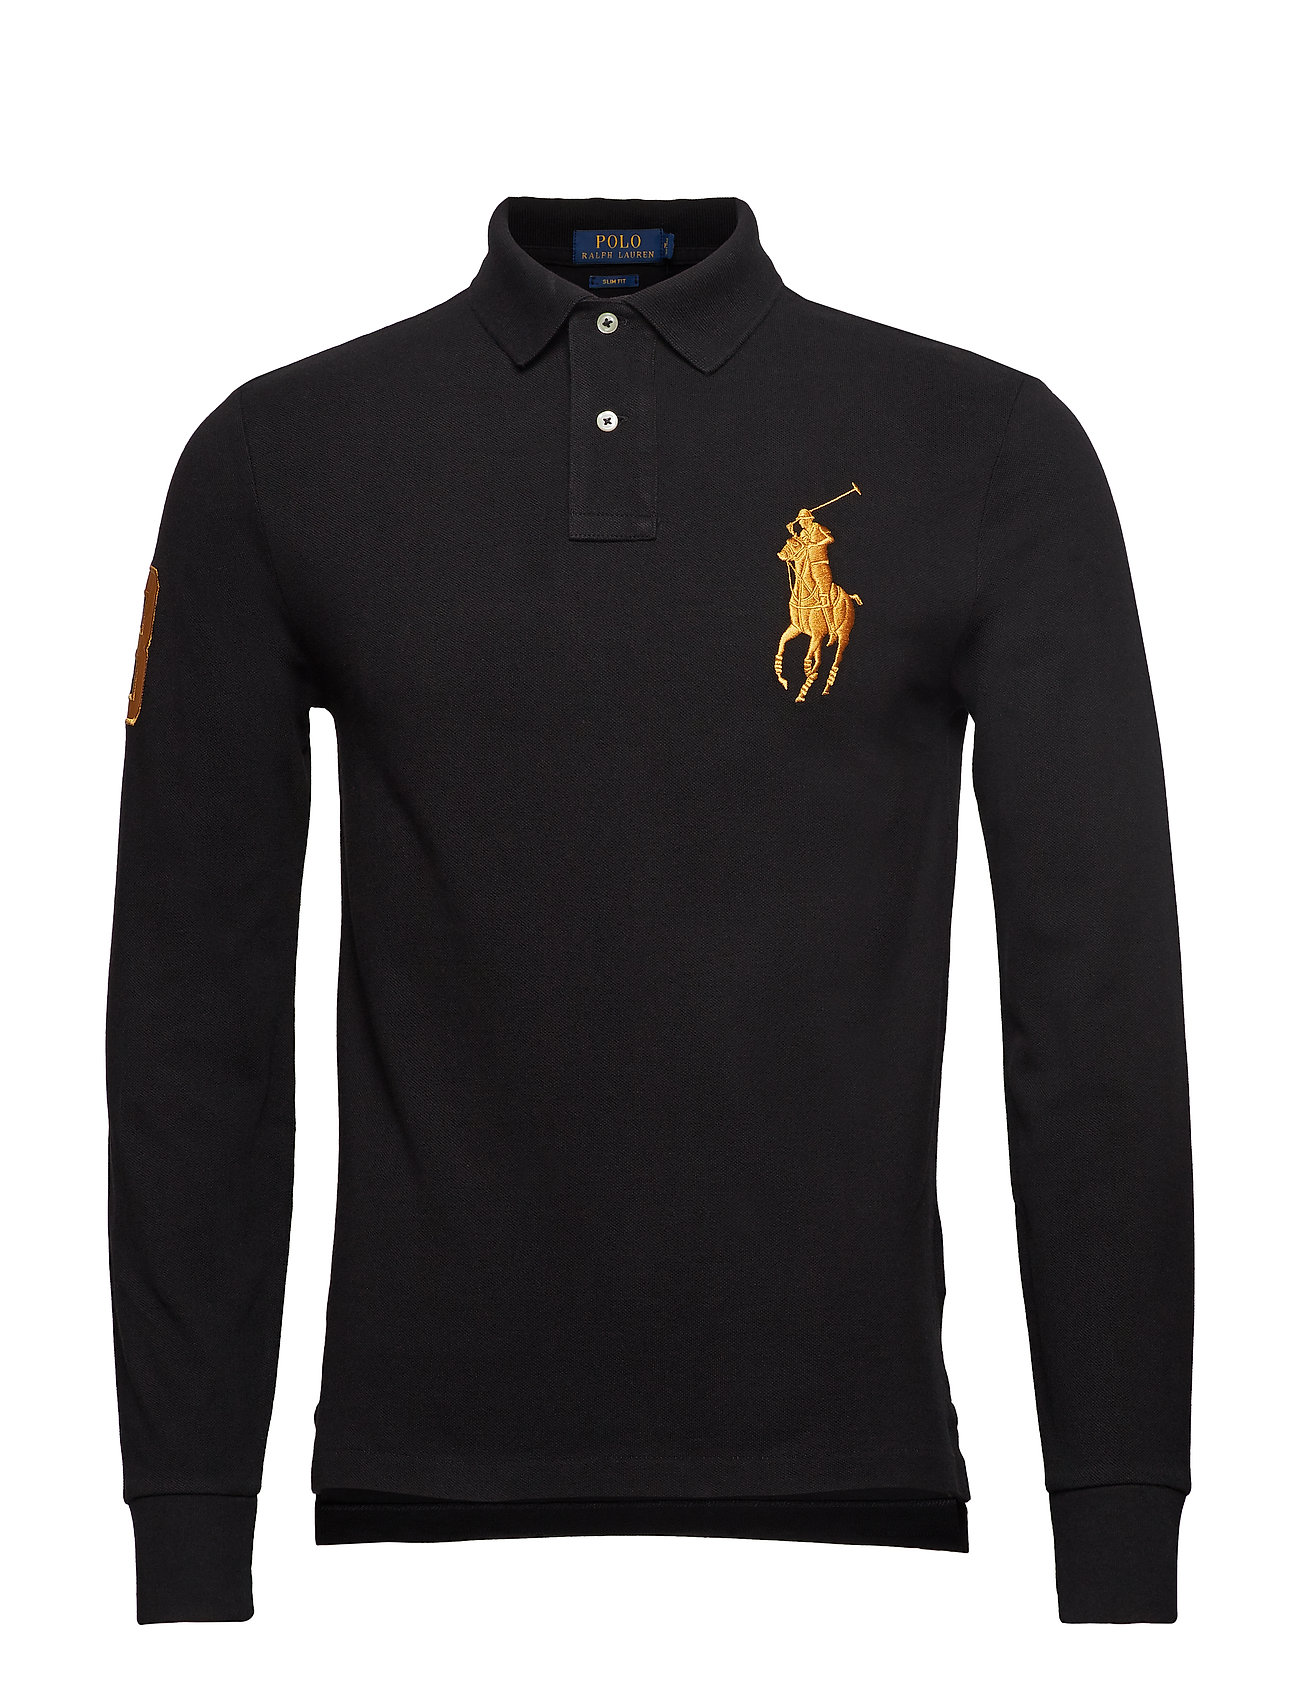 Polo Ralph Lauren LSKCSLMM2-LONG SLEEVE-KNIT - POLO BLACK